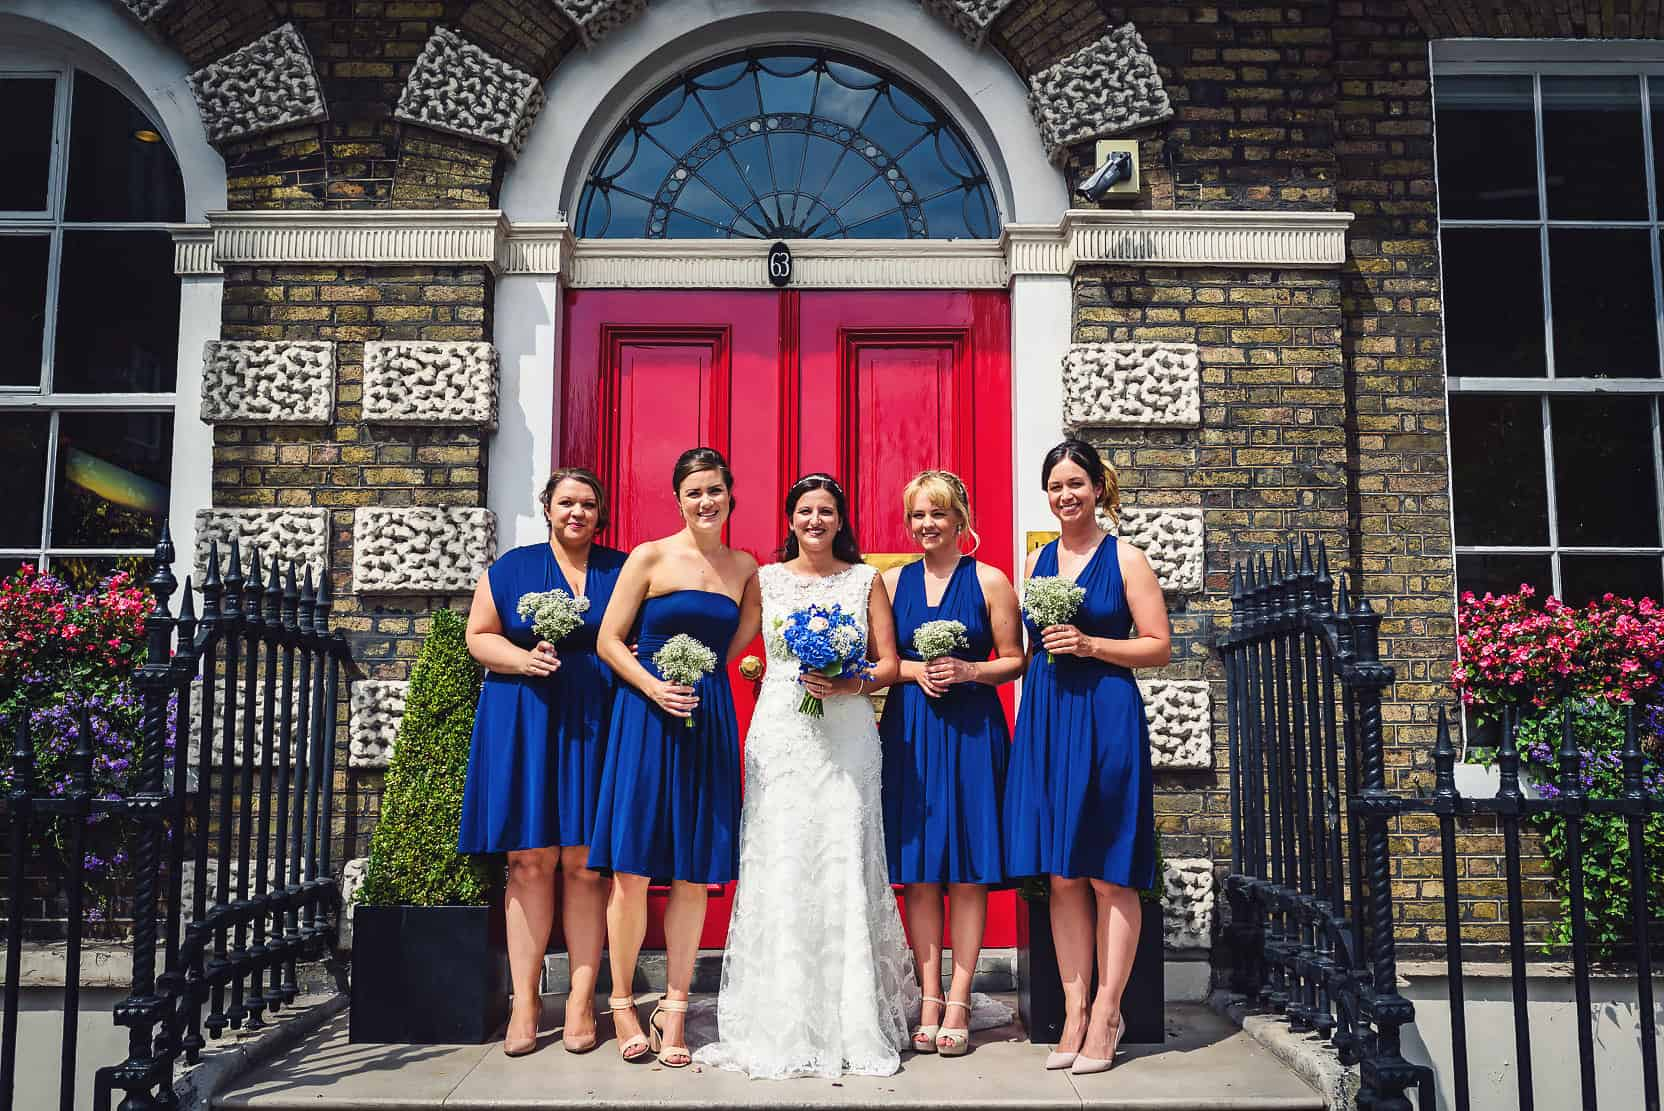 wedding_photography_asia_house_london_ld_justin_bailey_photography_006